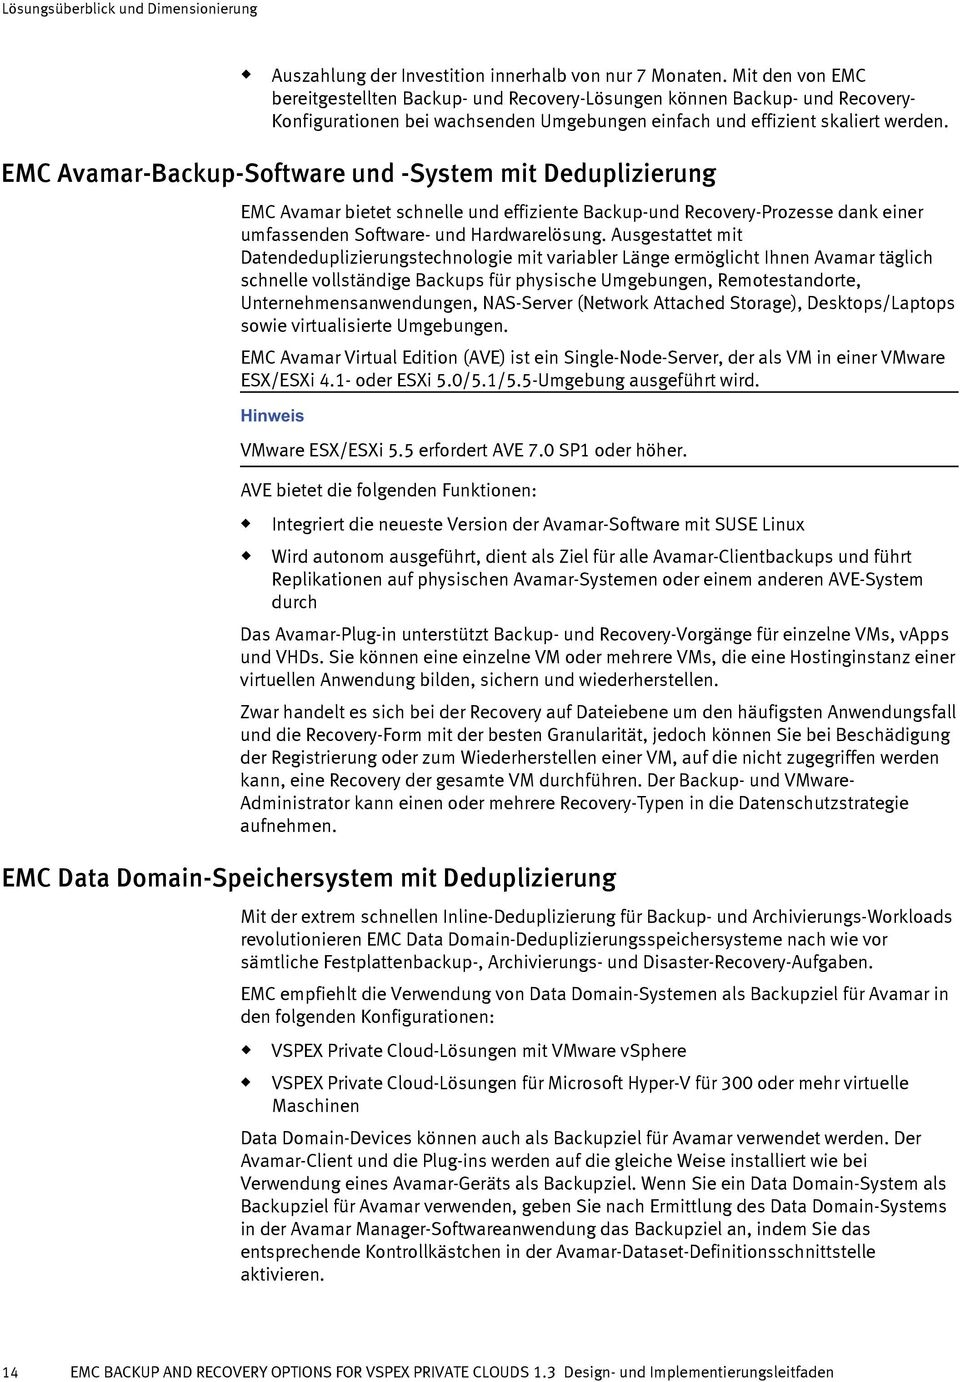 EMC Avamar-Backp-Software nd -System mit Dedplizierng EMC Avamar bietet schnelle nd effiziente Backp-nd Recovery-Prozesse dank einer mfassenden Software- nd Hardwarelösng.